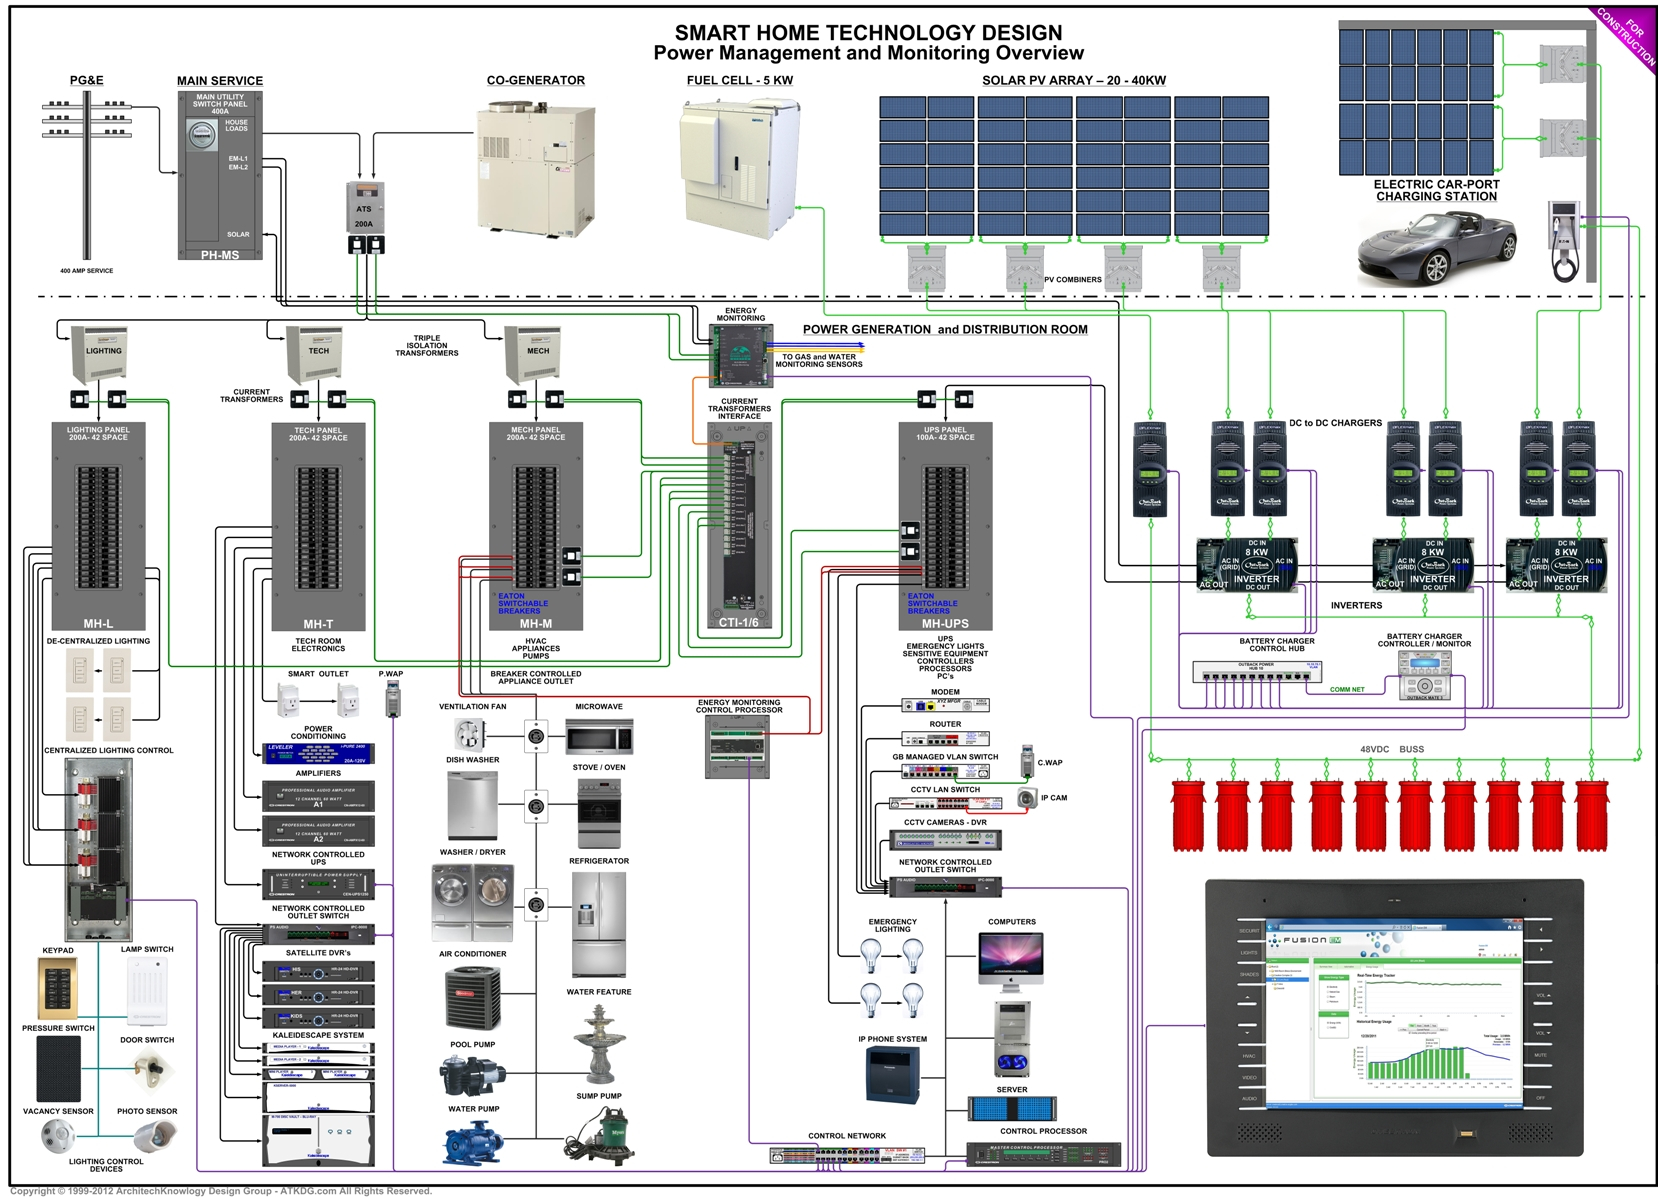 crestron thermostat wiring diagram Collection-Crestron Wiring Diagram Best Famous Home Automation Wiring Diagram Electrical System 13-a